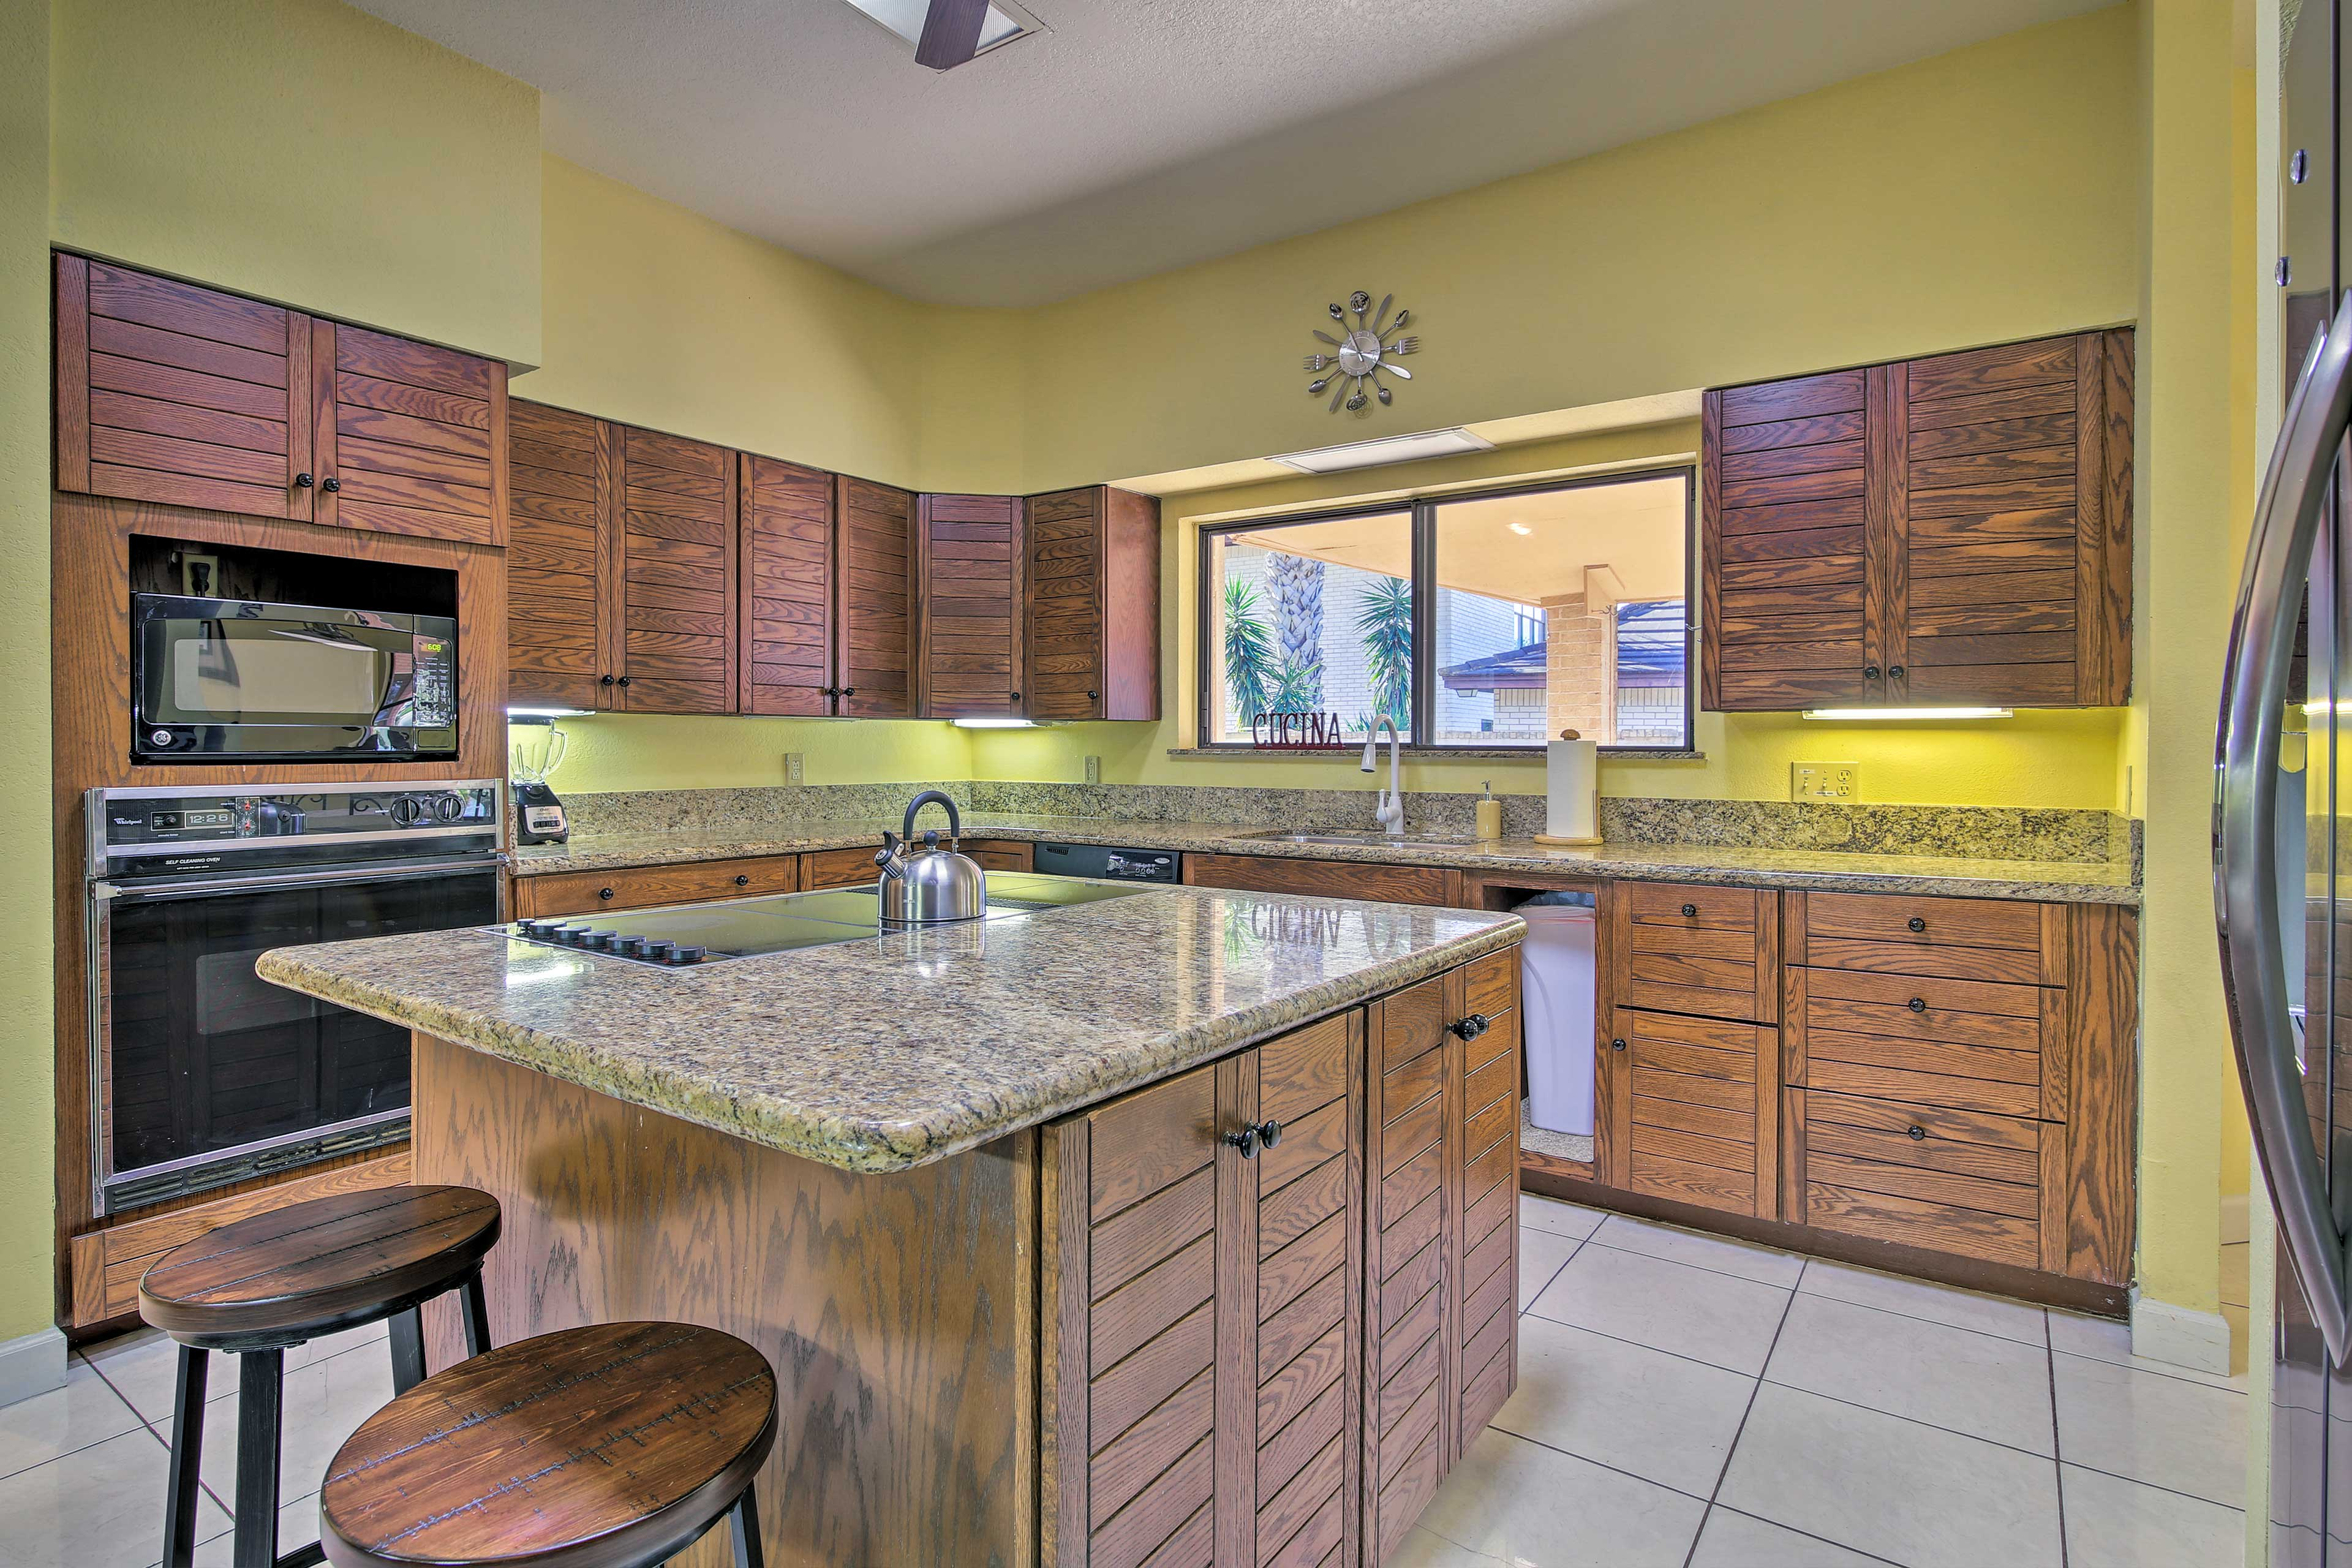 Meal prep will be a breeze with ample counter space.